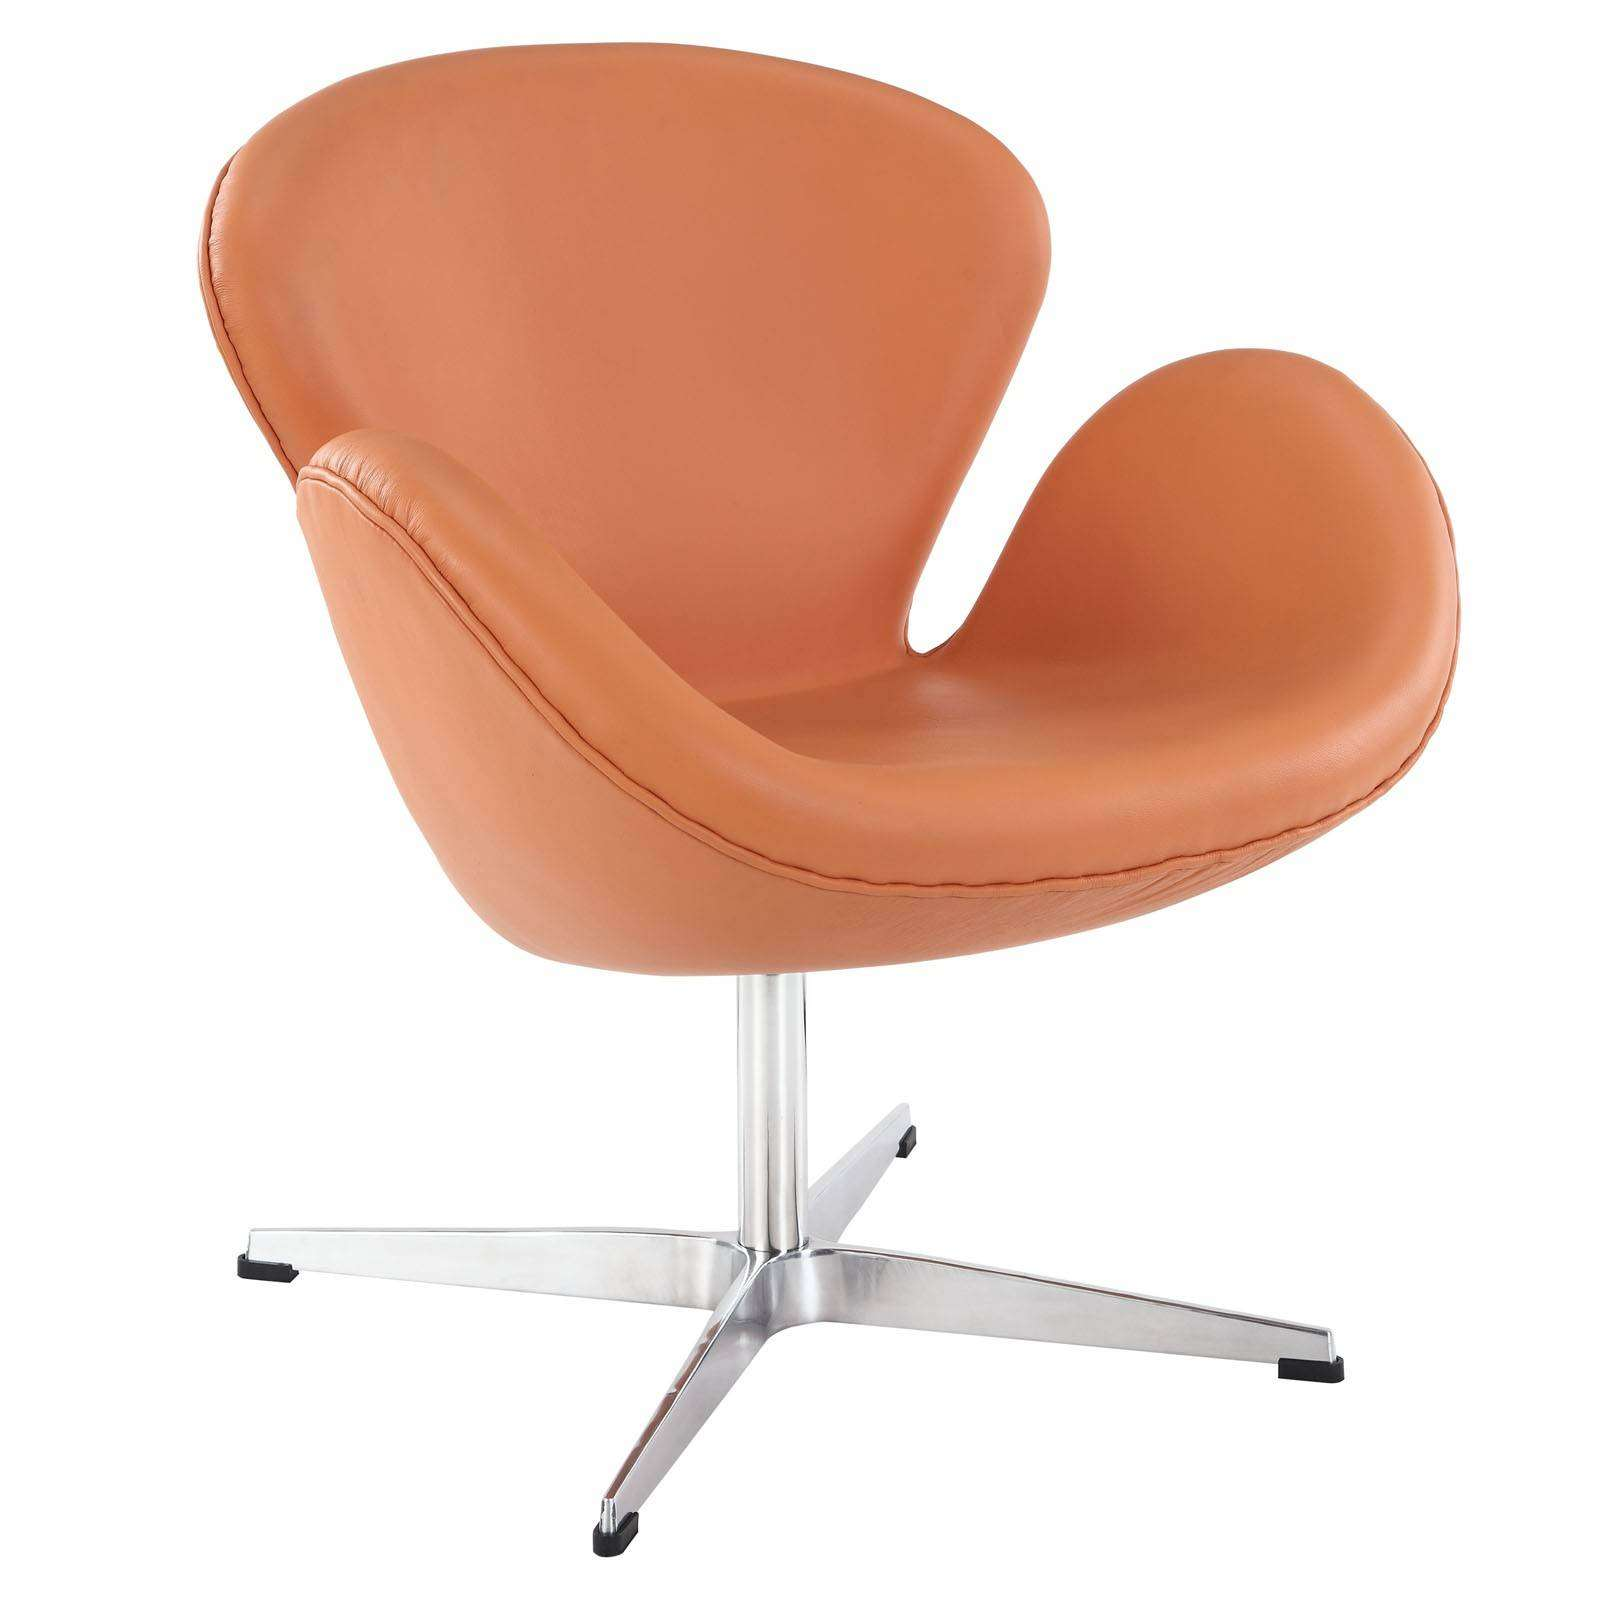 Philippe Starck Chaise Arne Jacobsen Swan Chair - Leather